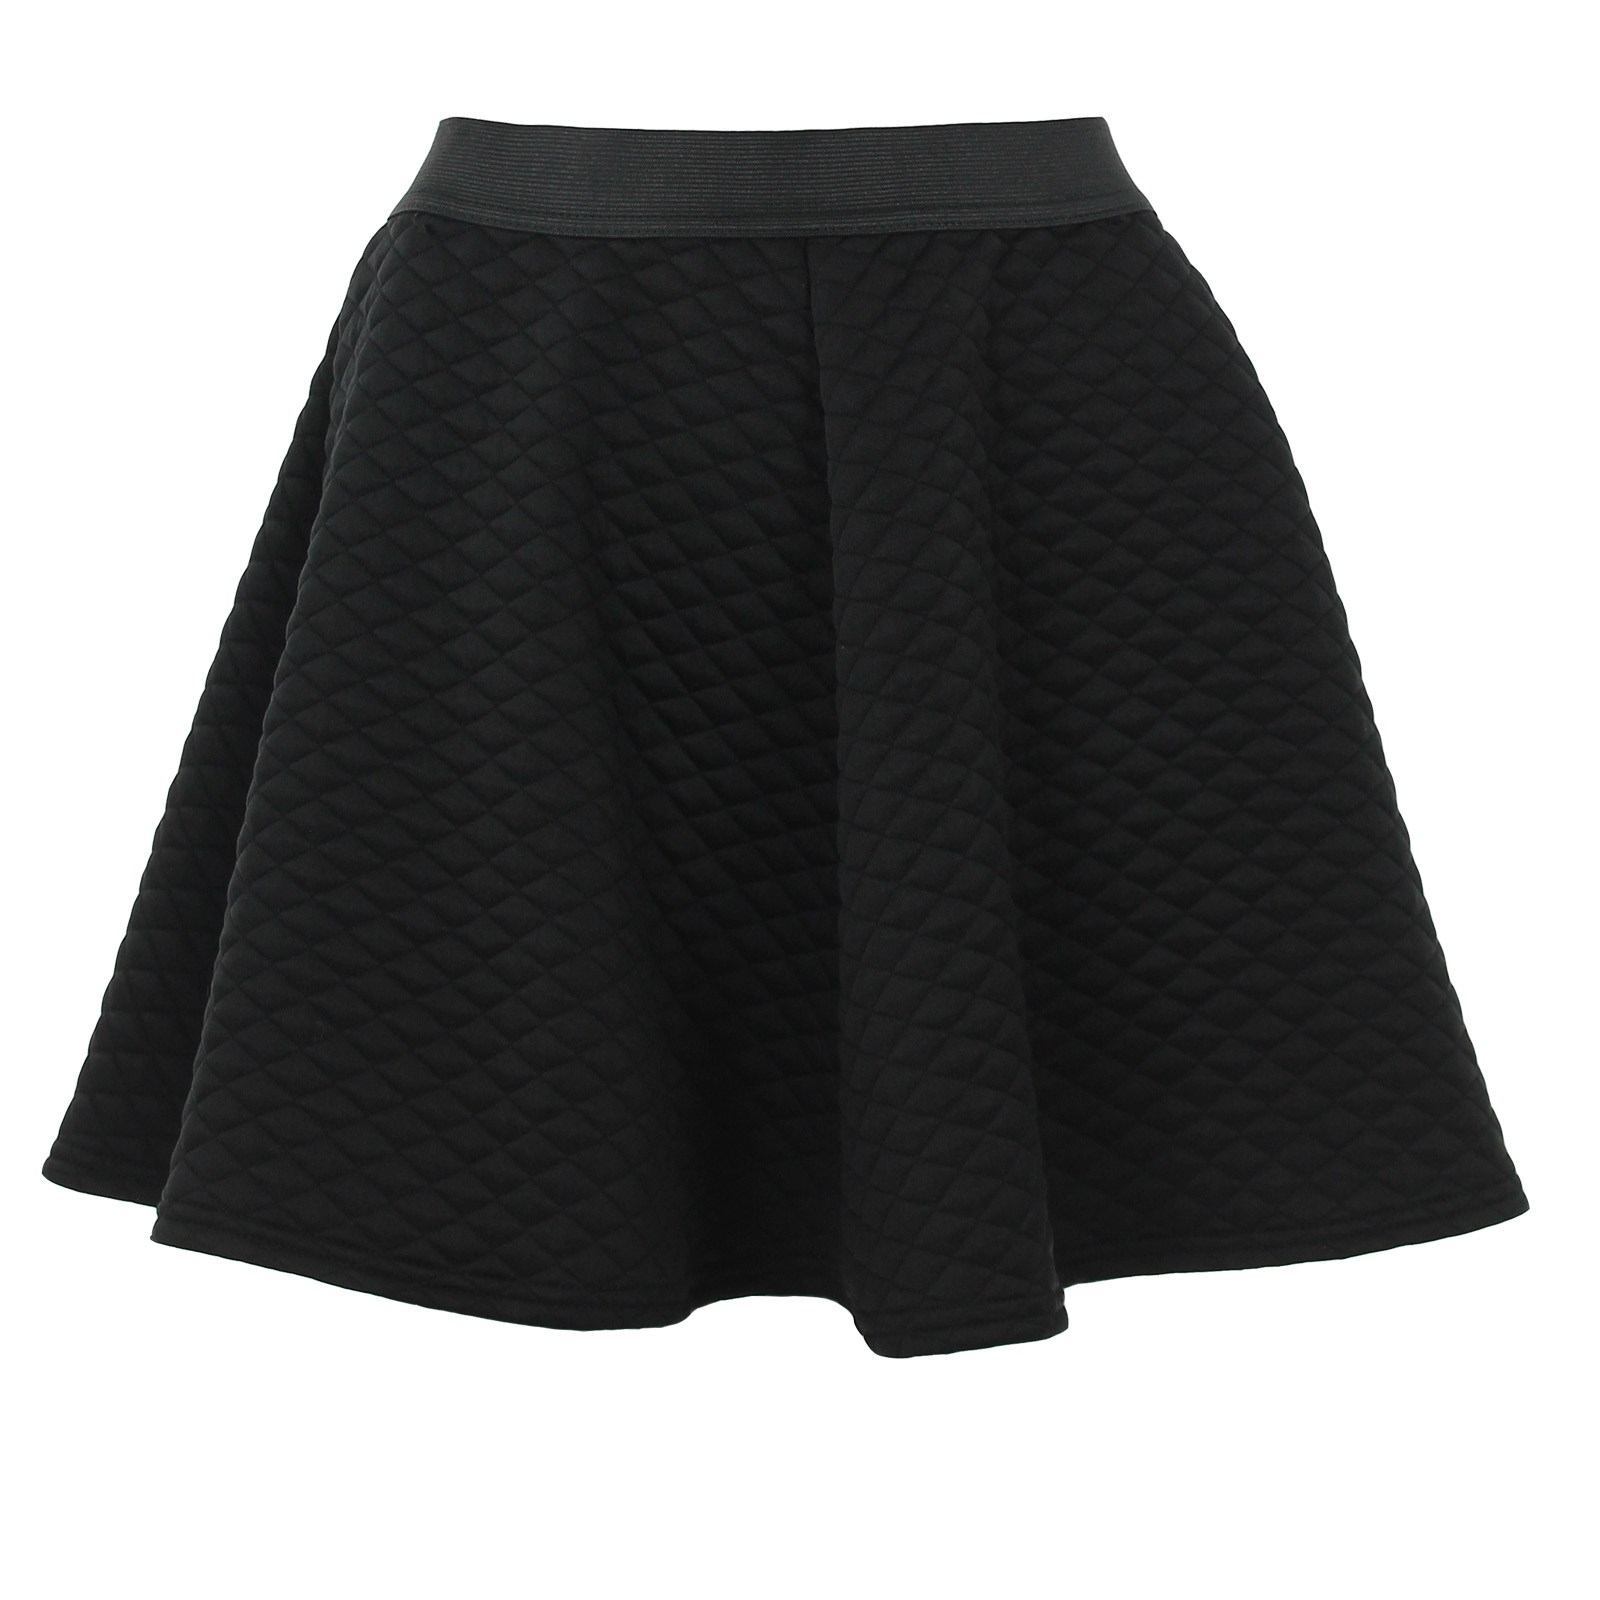 quilted black skater skirt